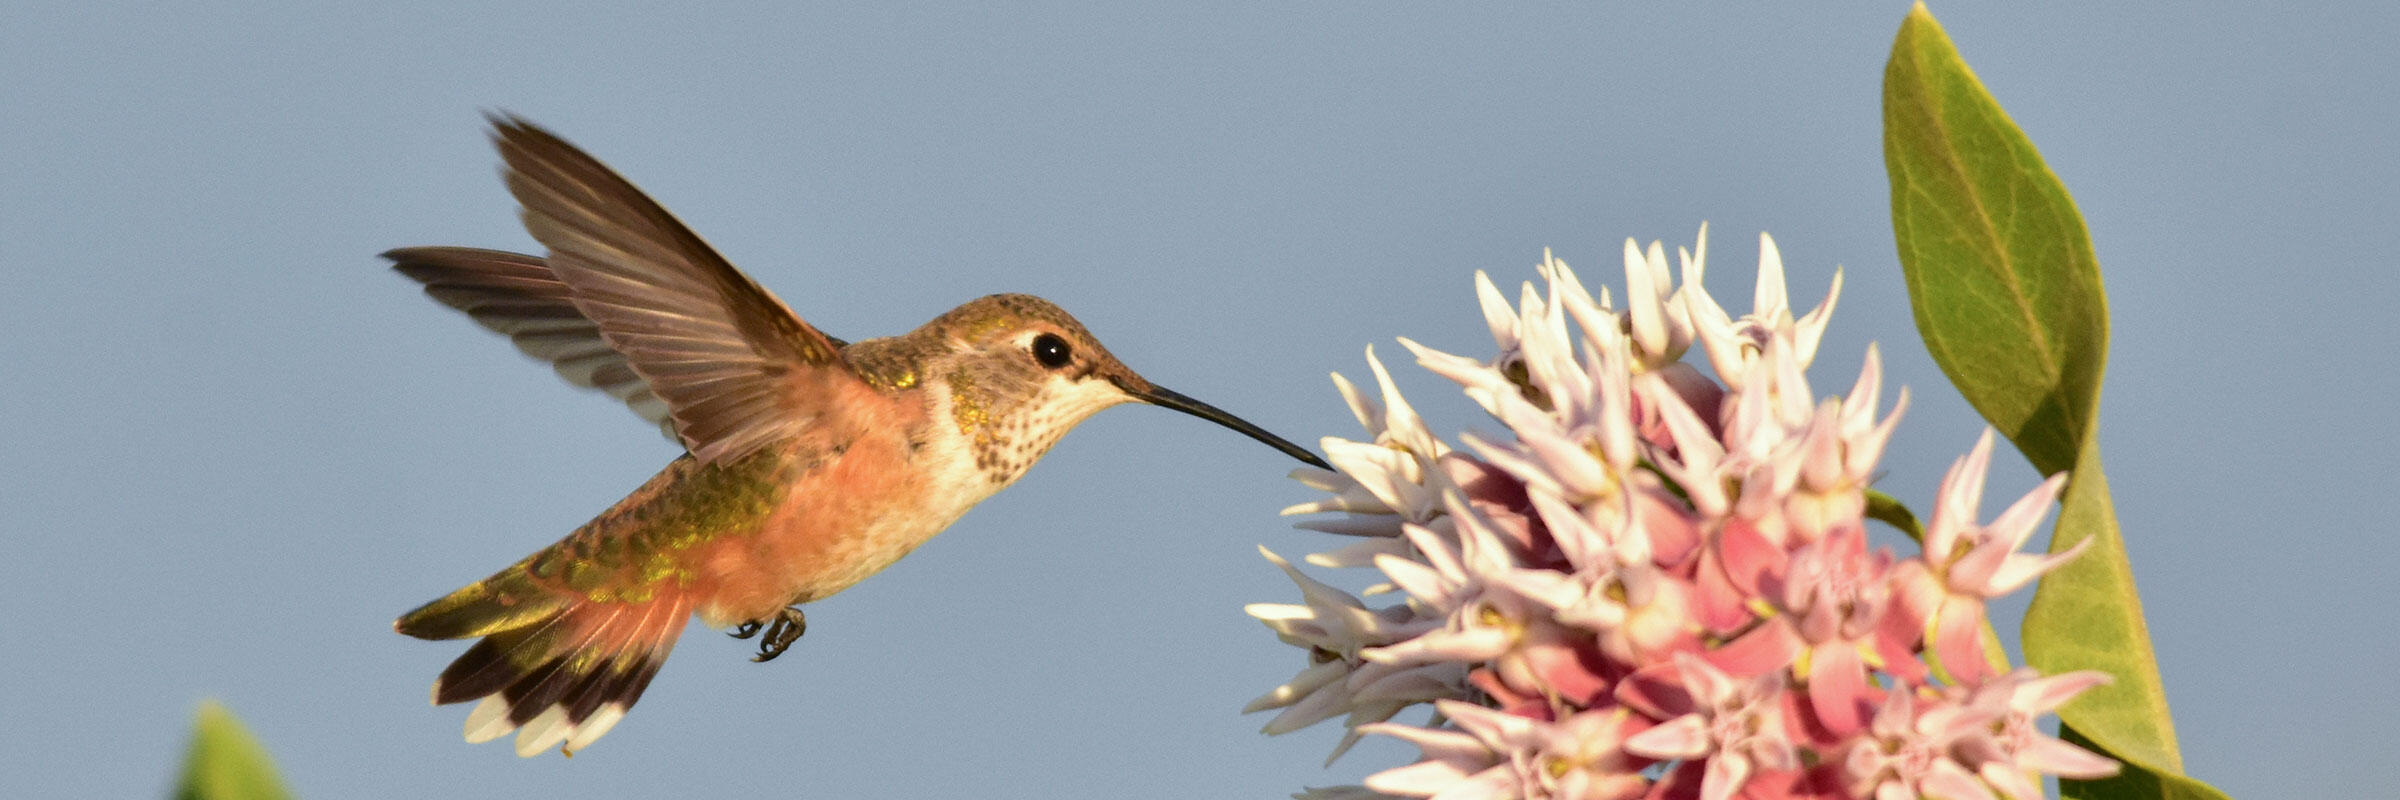 A Rufous Hummingbird drinks nectar from a Showy Milkweed.